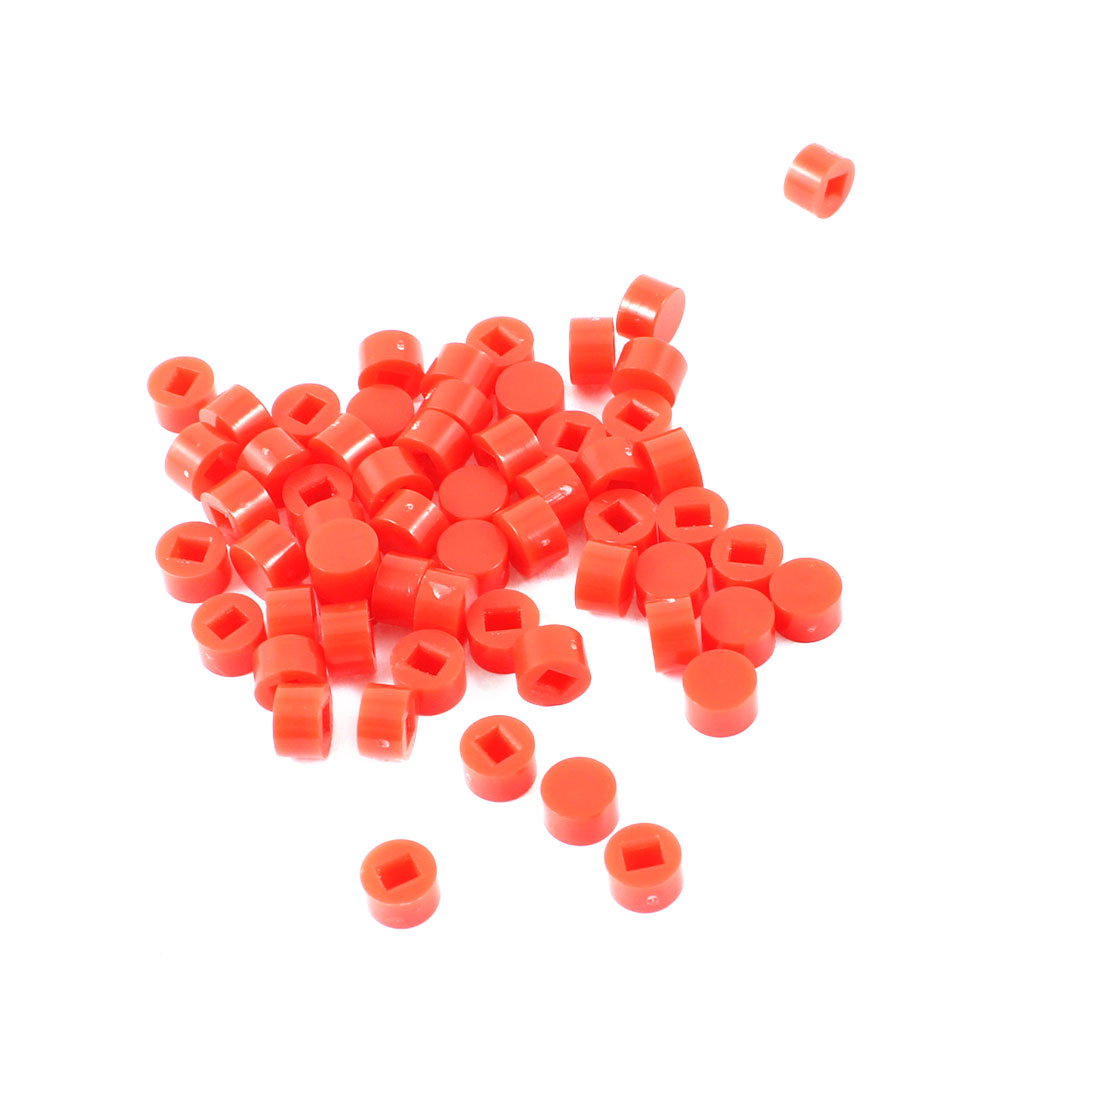 55 Pcs Round Tactile Button Caps Covers Protector Red for Tact Switch